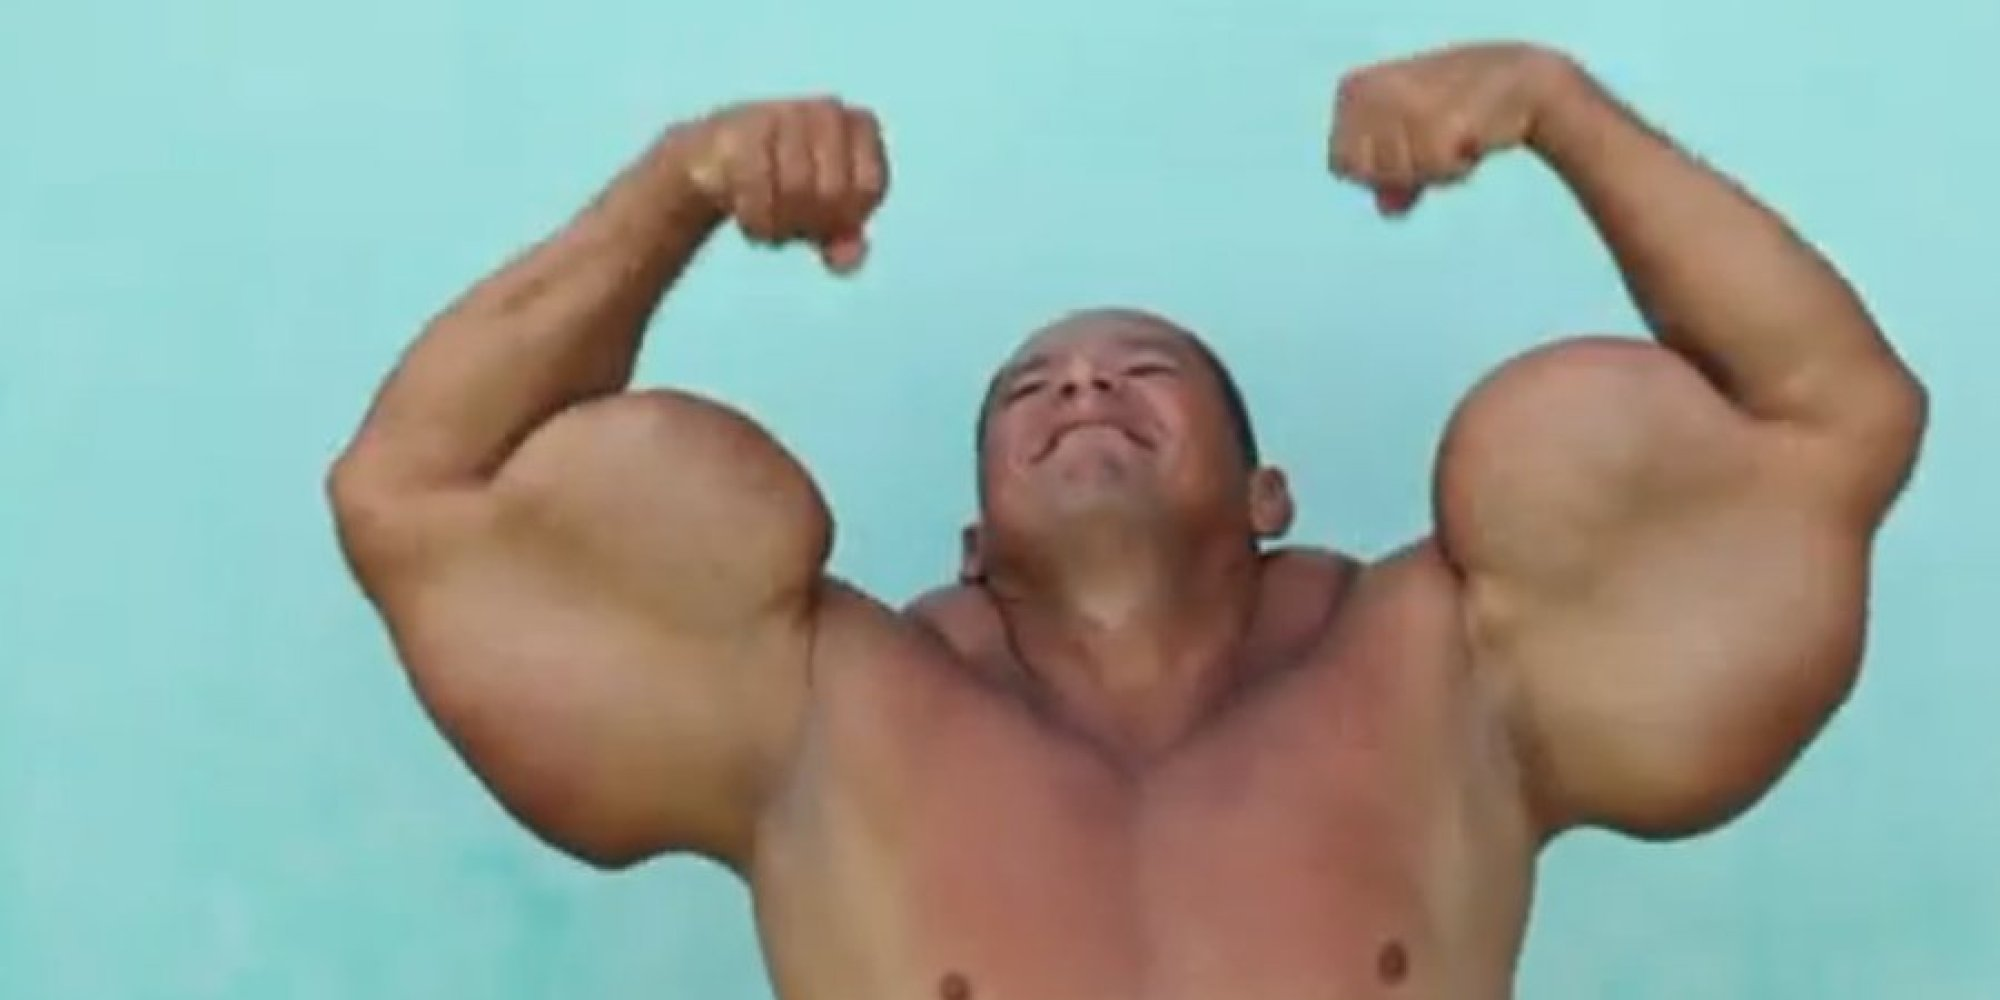 Brazilian Bodybuilder Admits His 29-Inch Biceps Are Fake | HuffPost